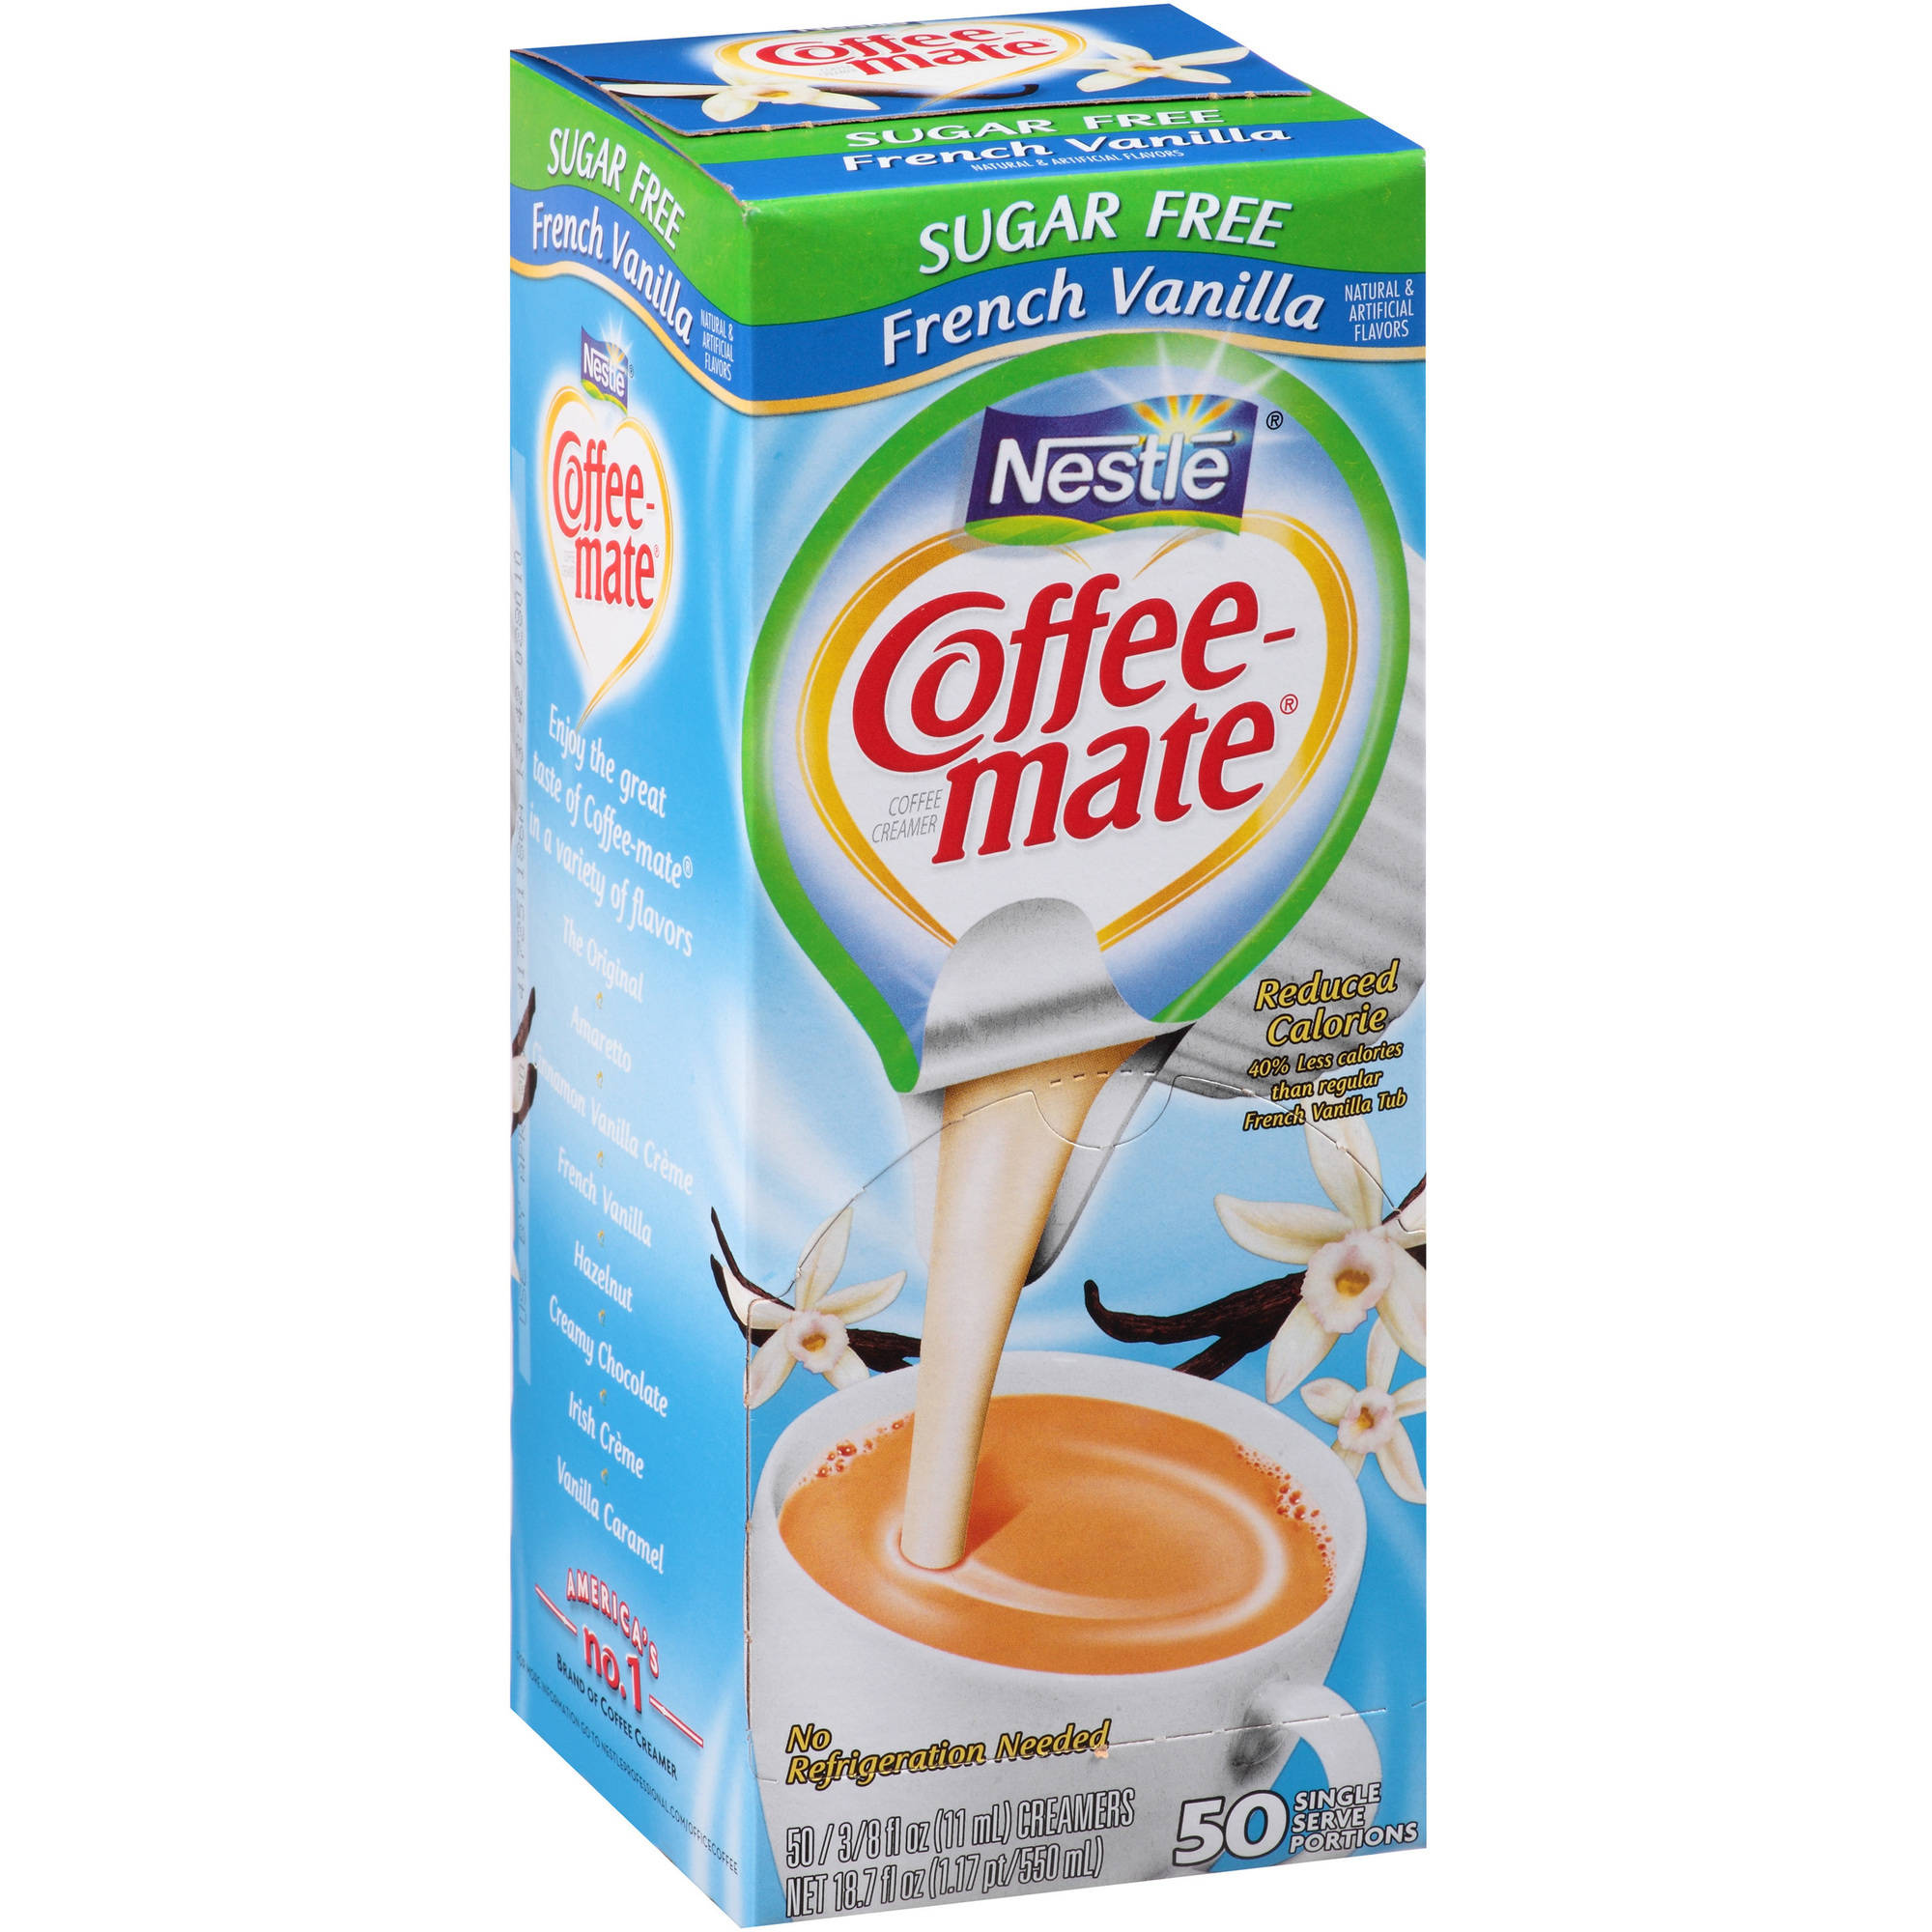 Nestl�� Coffee-mate Sugar Free French Vanilla Coffee Creamer 50-0.375 fl. oz. Tubs